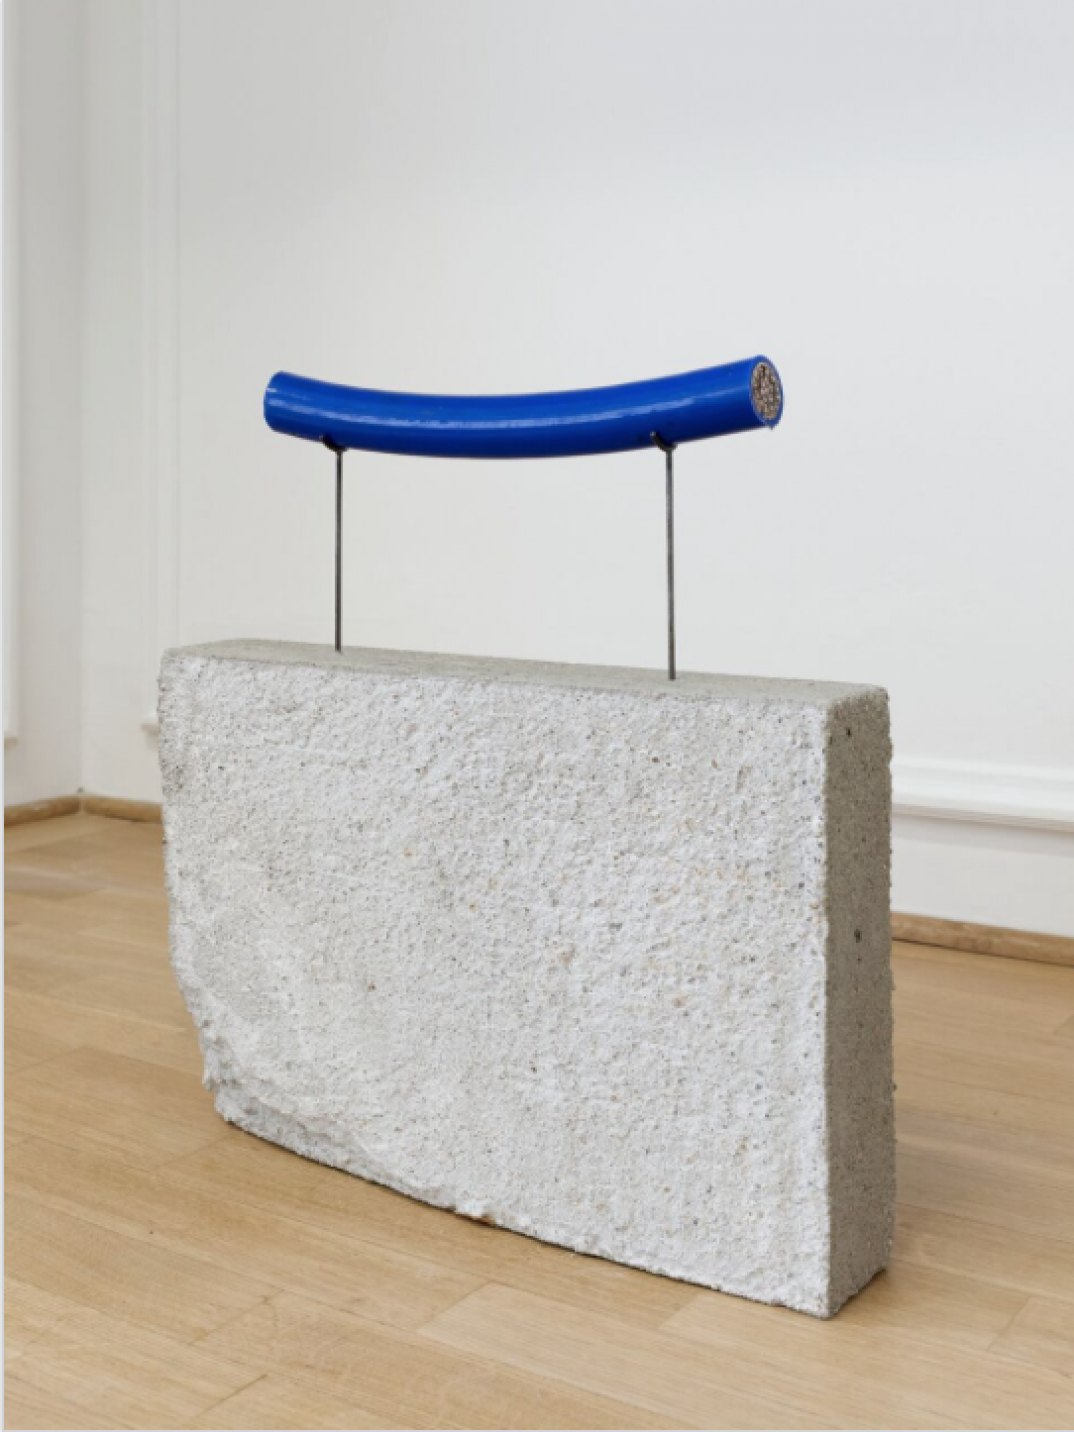 Nina Canell, <em>Brief Syllable</em>, 2017, subterranean signal cable, concrete, steel, 43 × 38,5 × 8 cm - Mendes Wood DM